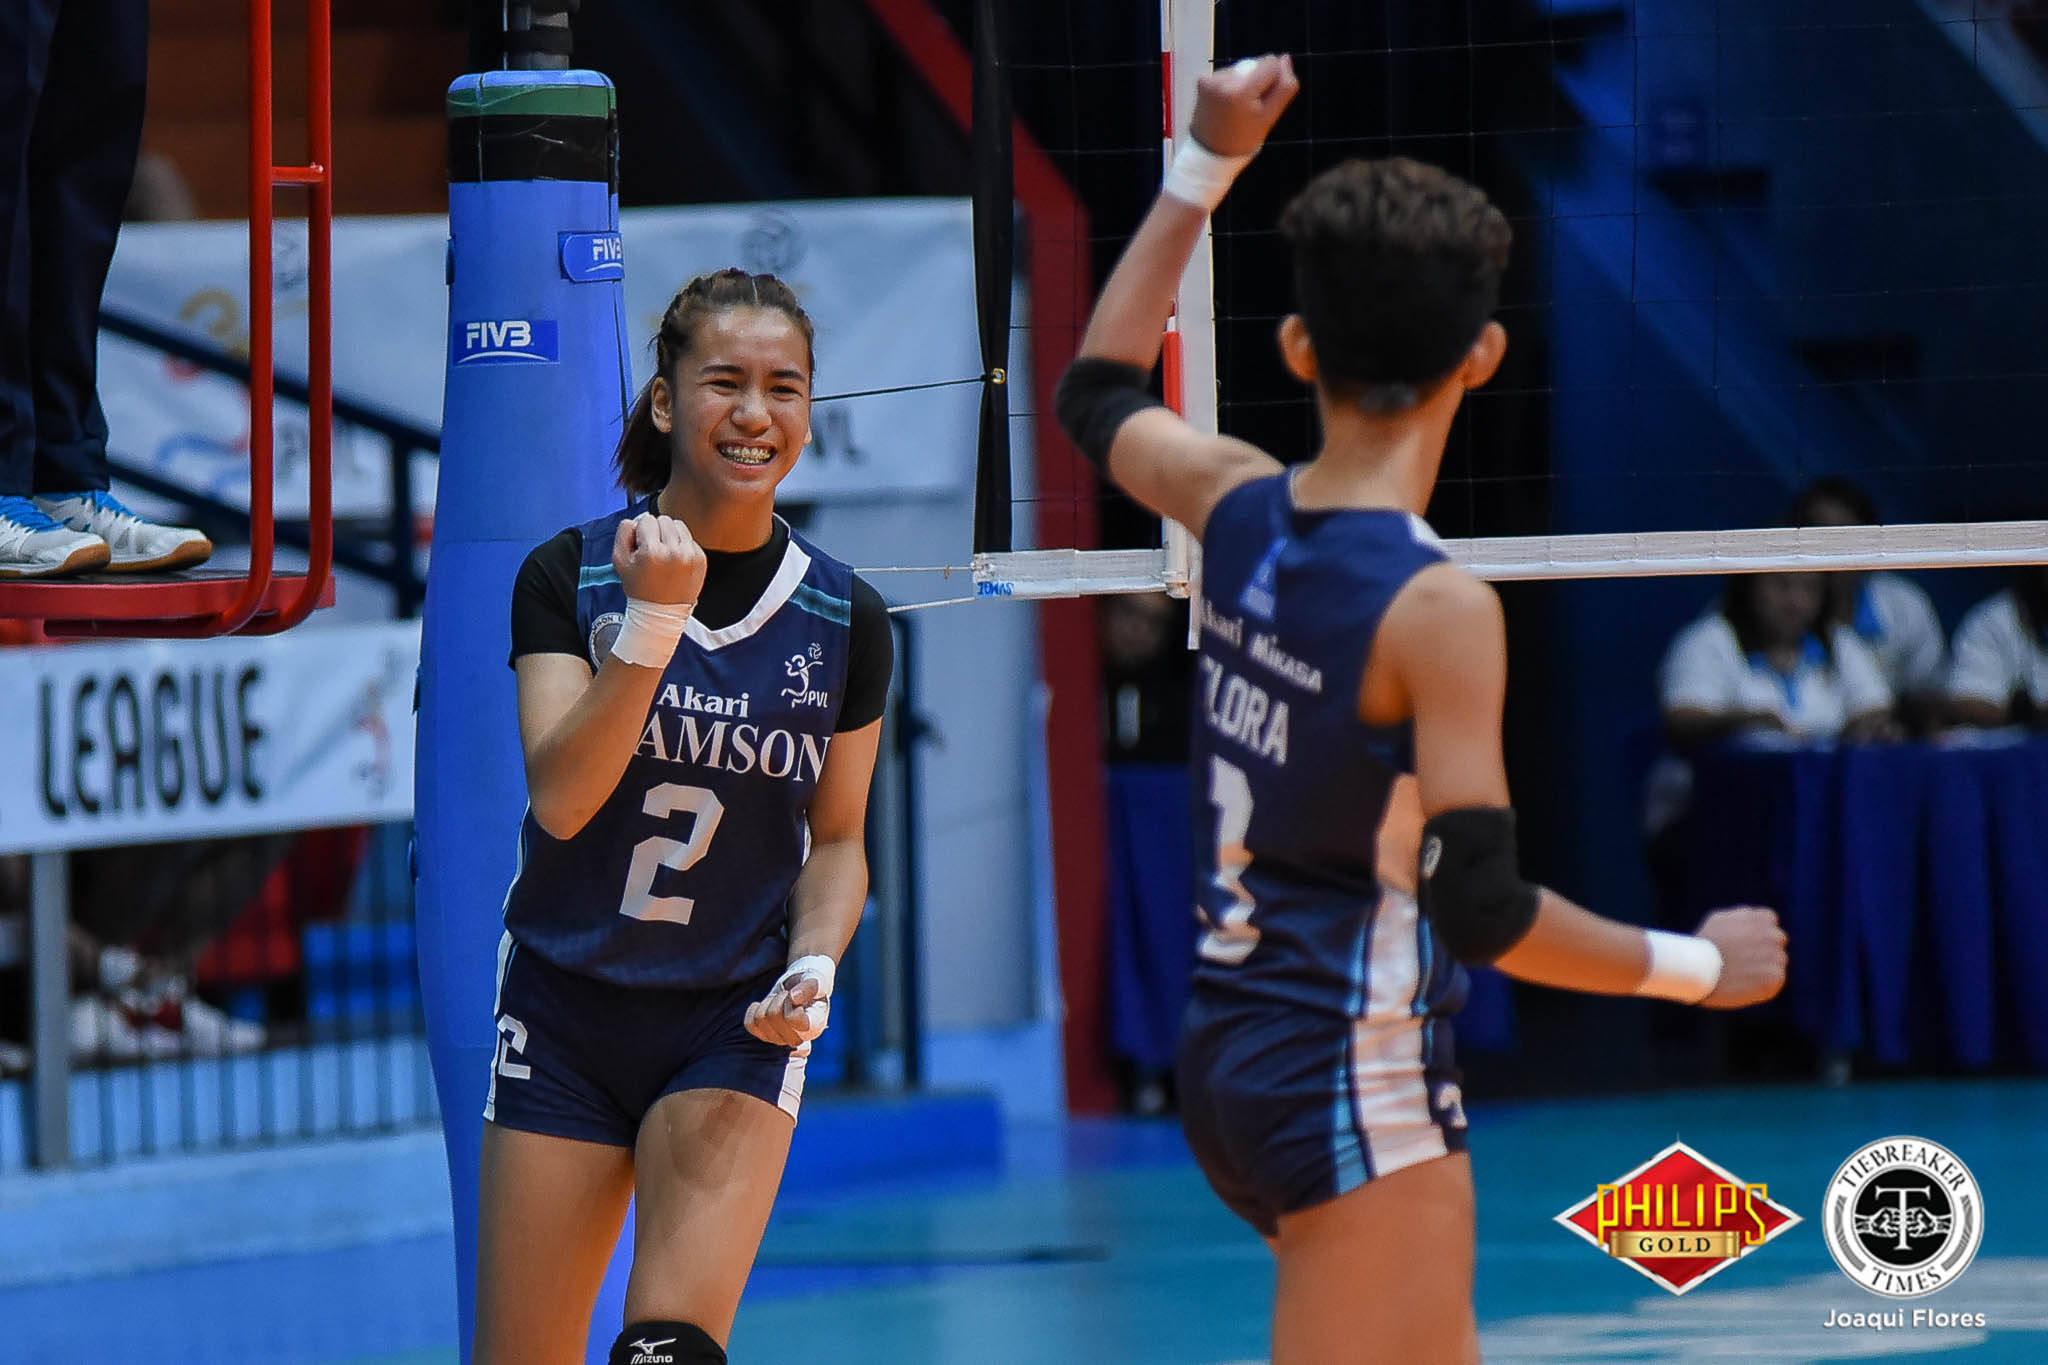 Tiebreaker Times Air Padda's worries go beyond Lady Falcons' undefeated record AdU News PVL Volleyball  Air Padda Adamson Women's Volleyball 2018 PVL Women's Collegiate Conference 2018 PVL Season